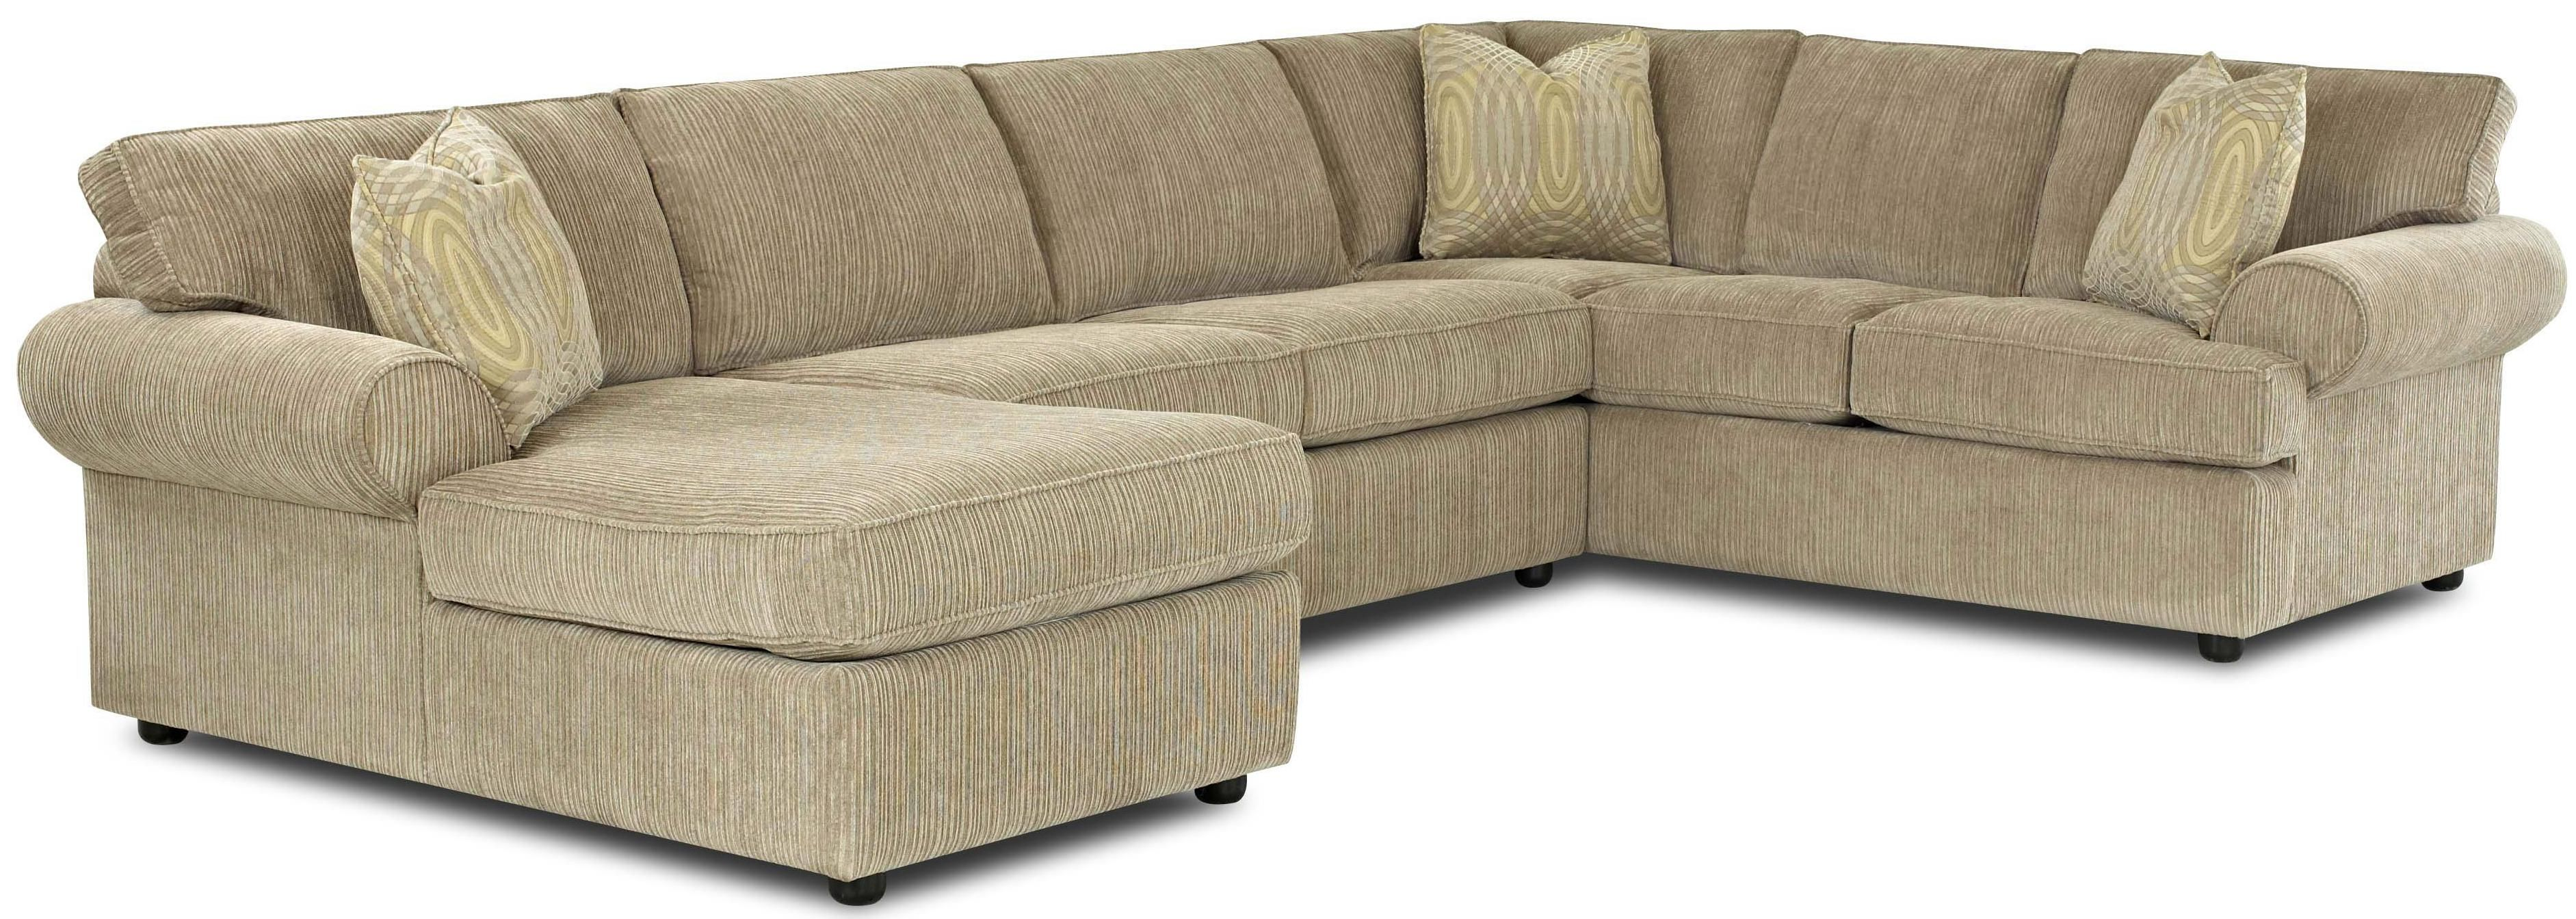 Julington Sectional by Simple Elegance Home Pinterest